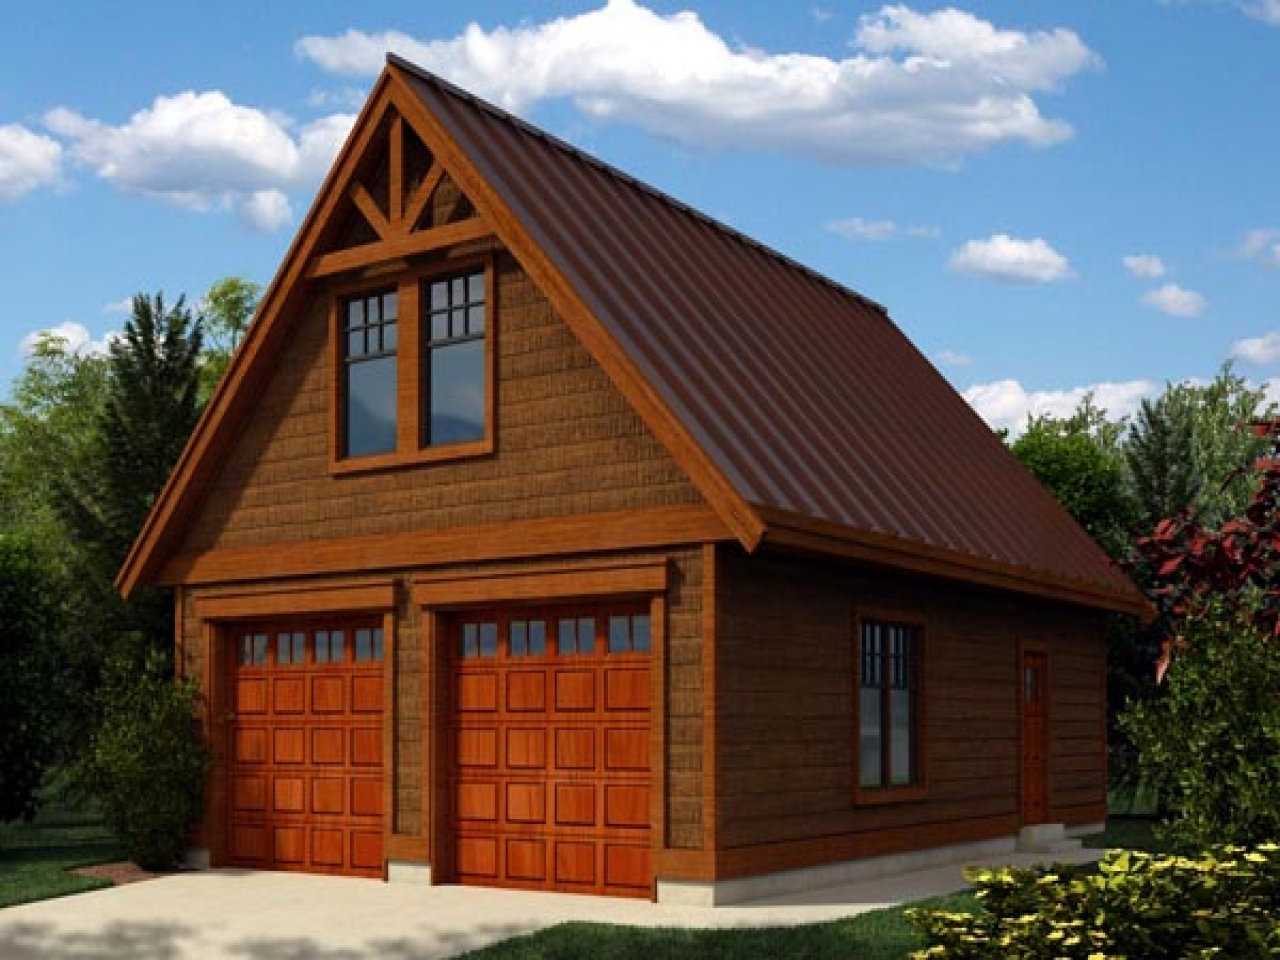 Garage plans with loft contemporary garage plans with loft for Log cabin garage plans